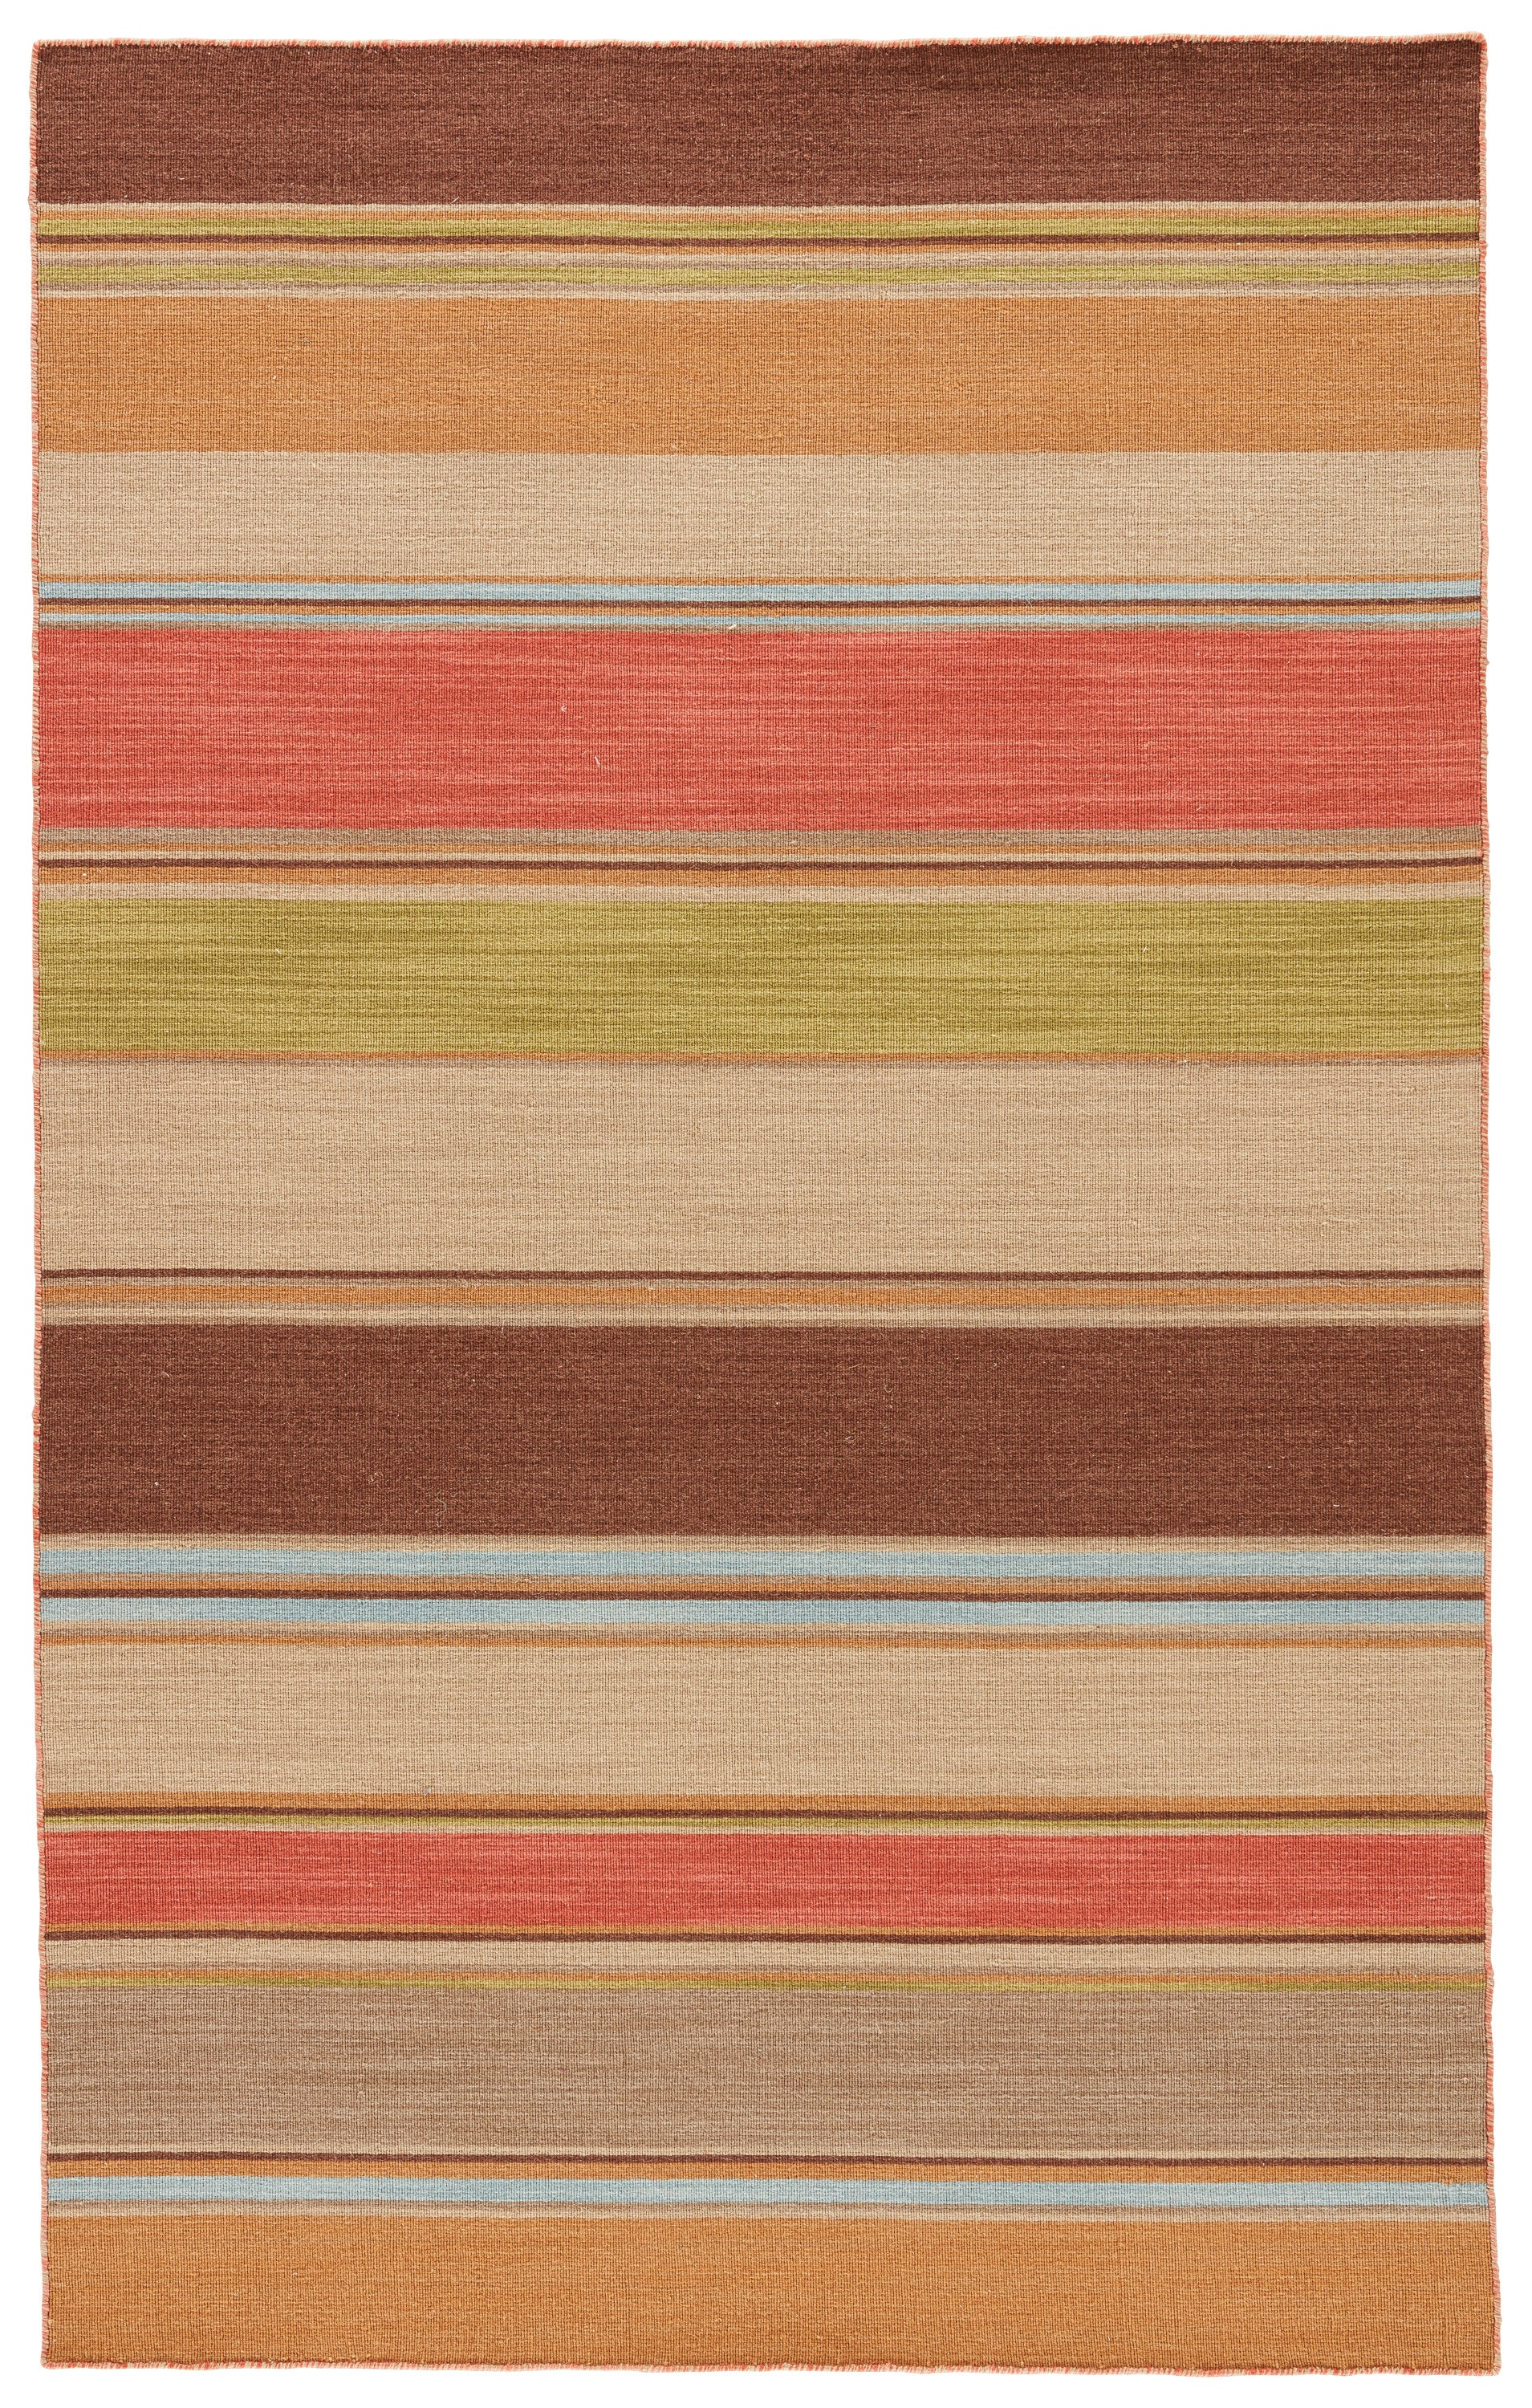 Rectangle Brown Stripe Dhurrie Wool Transitional recommended for Bedroom, Bathroom, Dining Room, Office, Hallway, Living Room